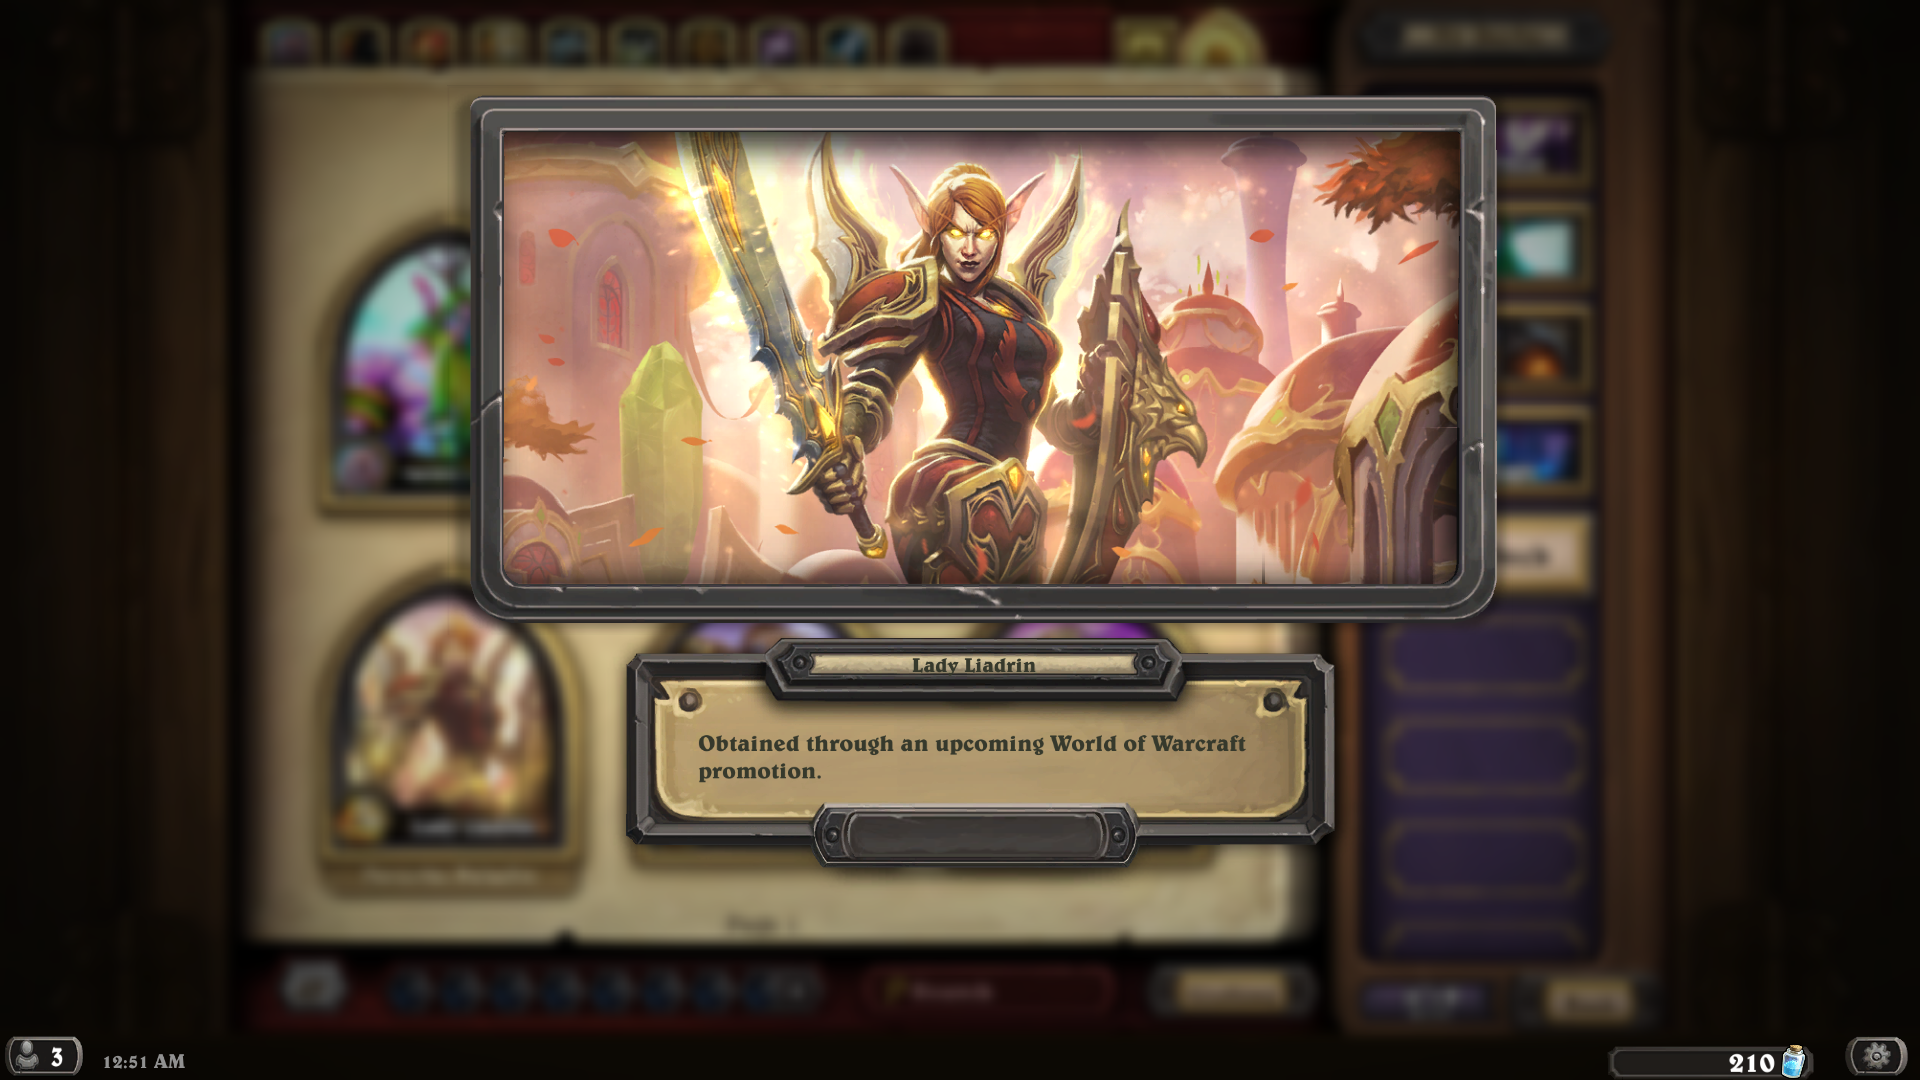 Hearthstone Screenshot 03-20-16 00.51.50